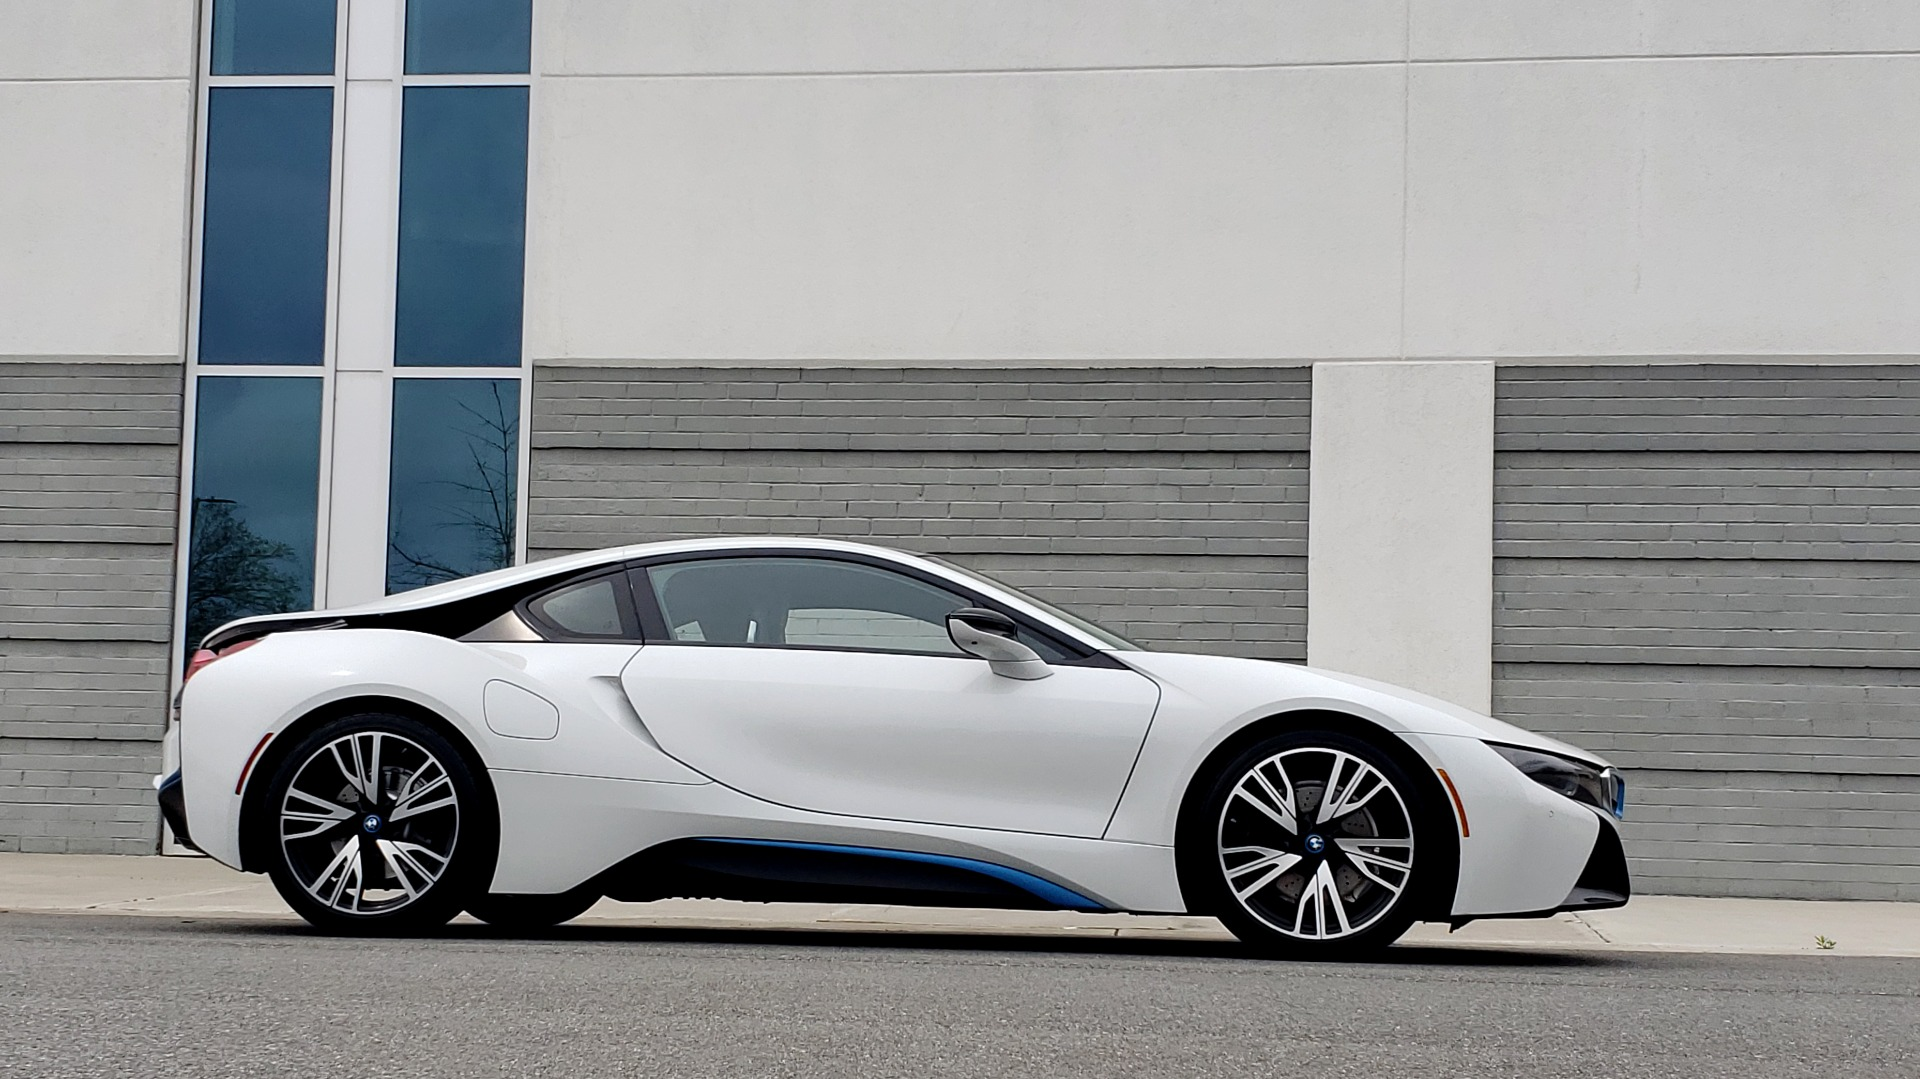 Used 2016 BMW i8 COUPE / GIGA WORLD / NAV / HUD / 20IN WHEELS / REARVIEW for sale Sold at Formula Imports in Charlotte NC 28227 7